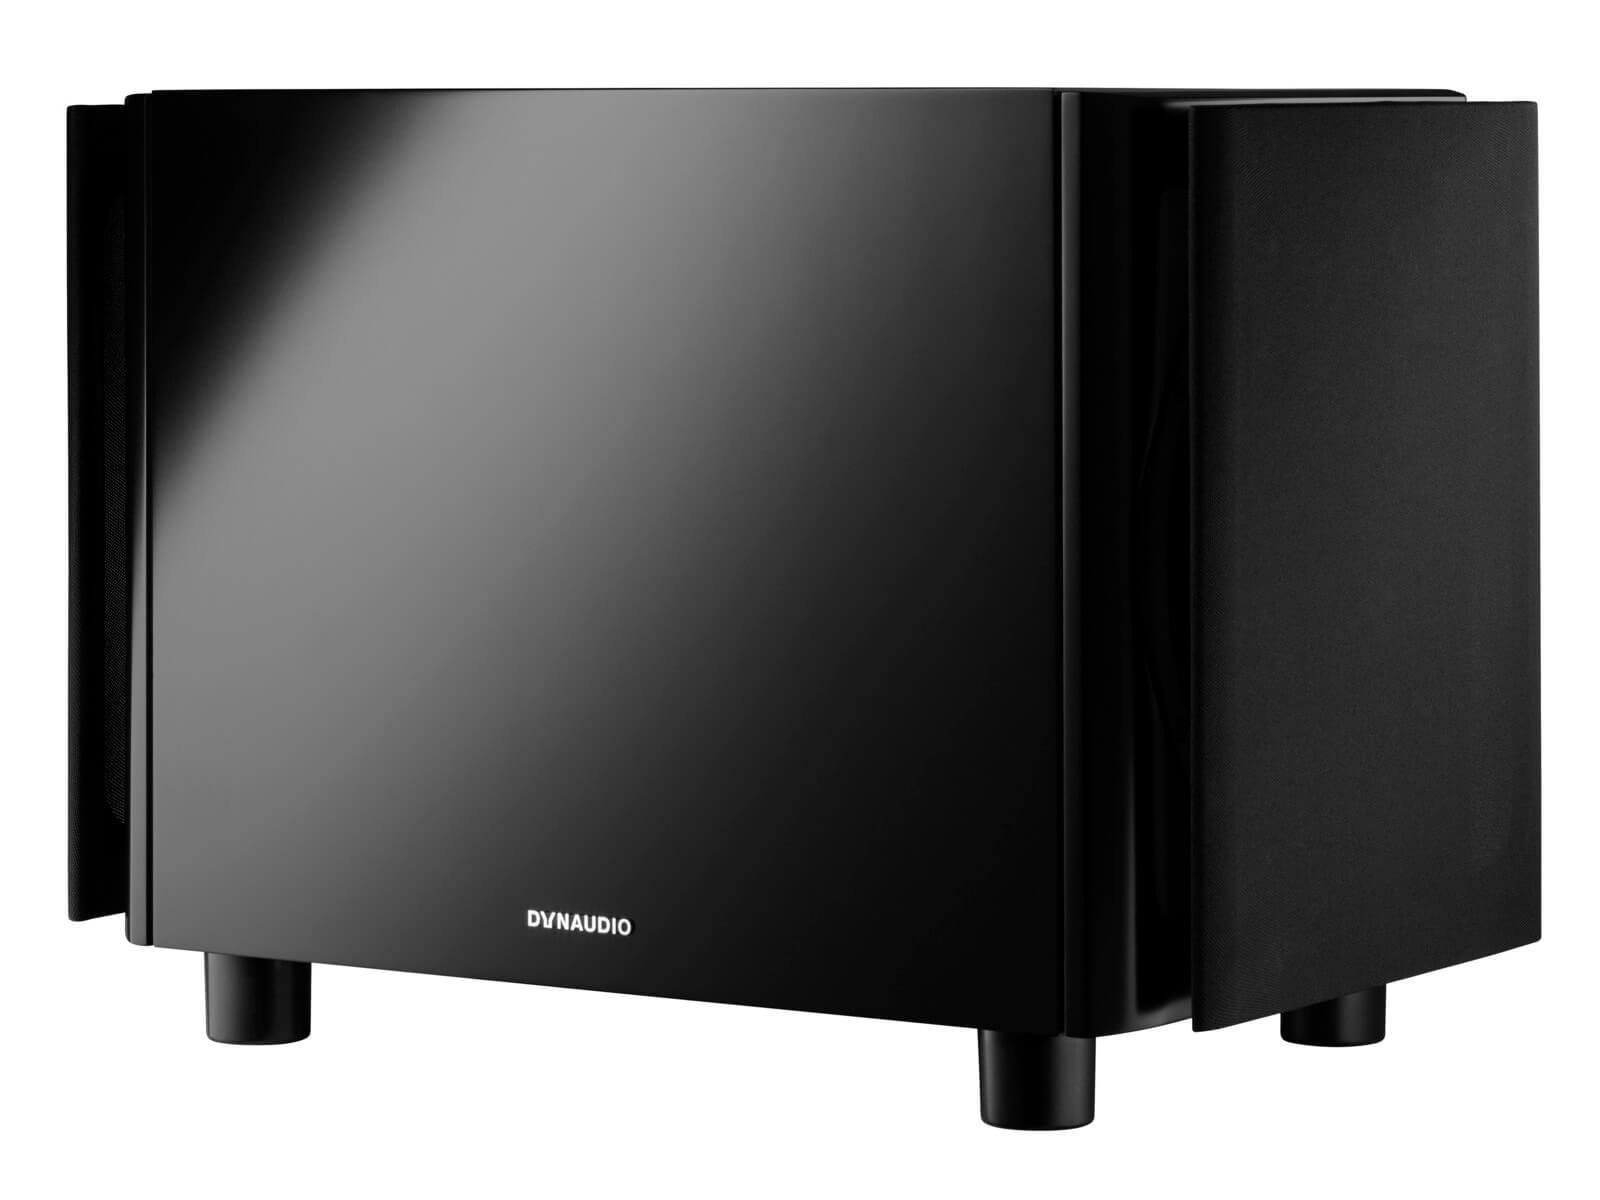 Dynaudio Sub 6 - Home Audio Subwoofer - Black Grille